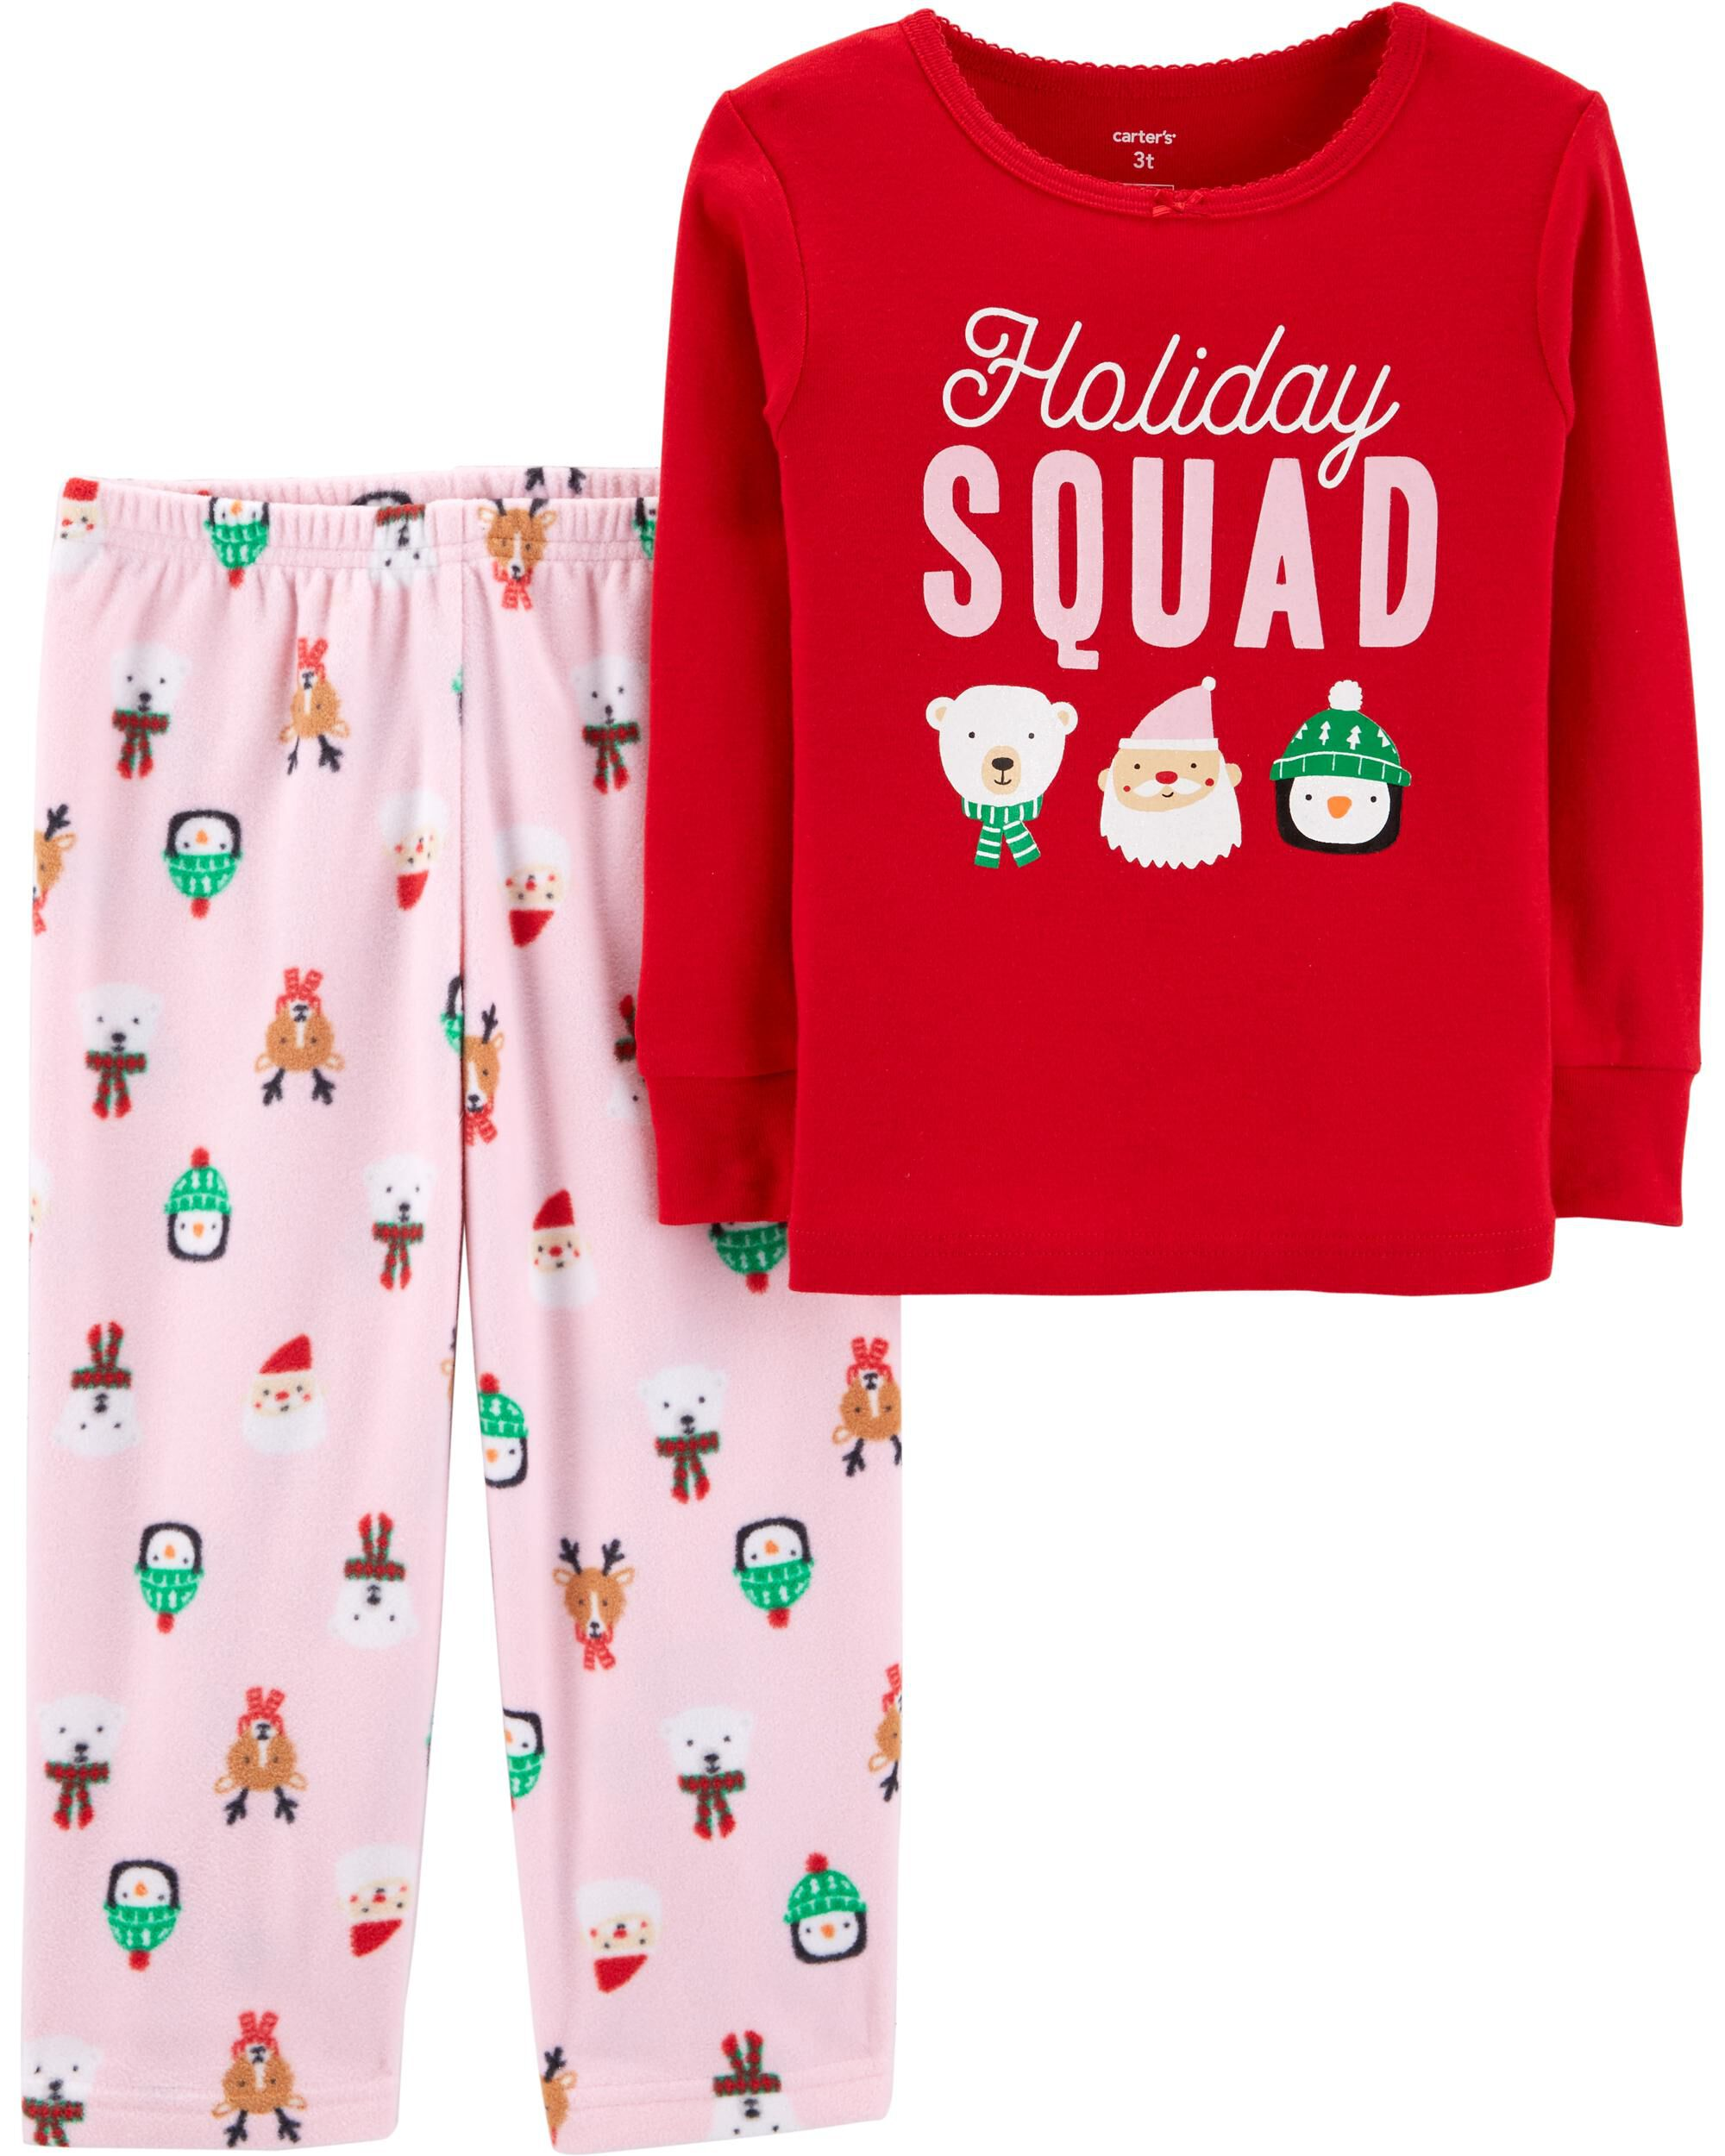 2 piece toddler christmas cotton fleece pjs loading zoom - Christmas Pjs Toddler